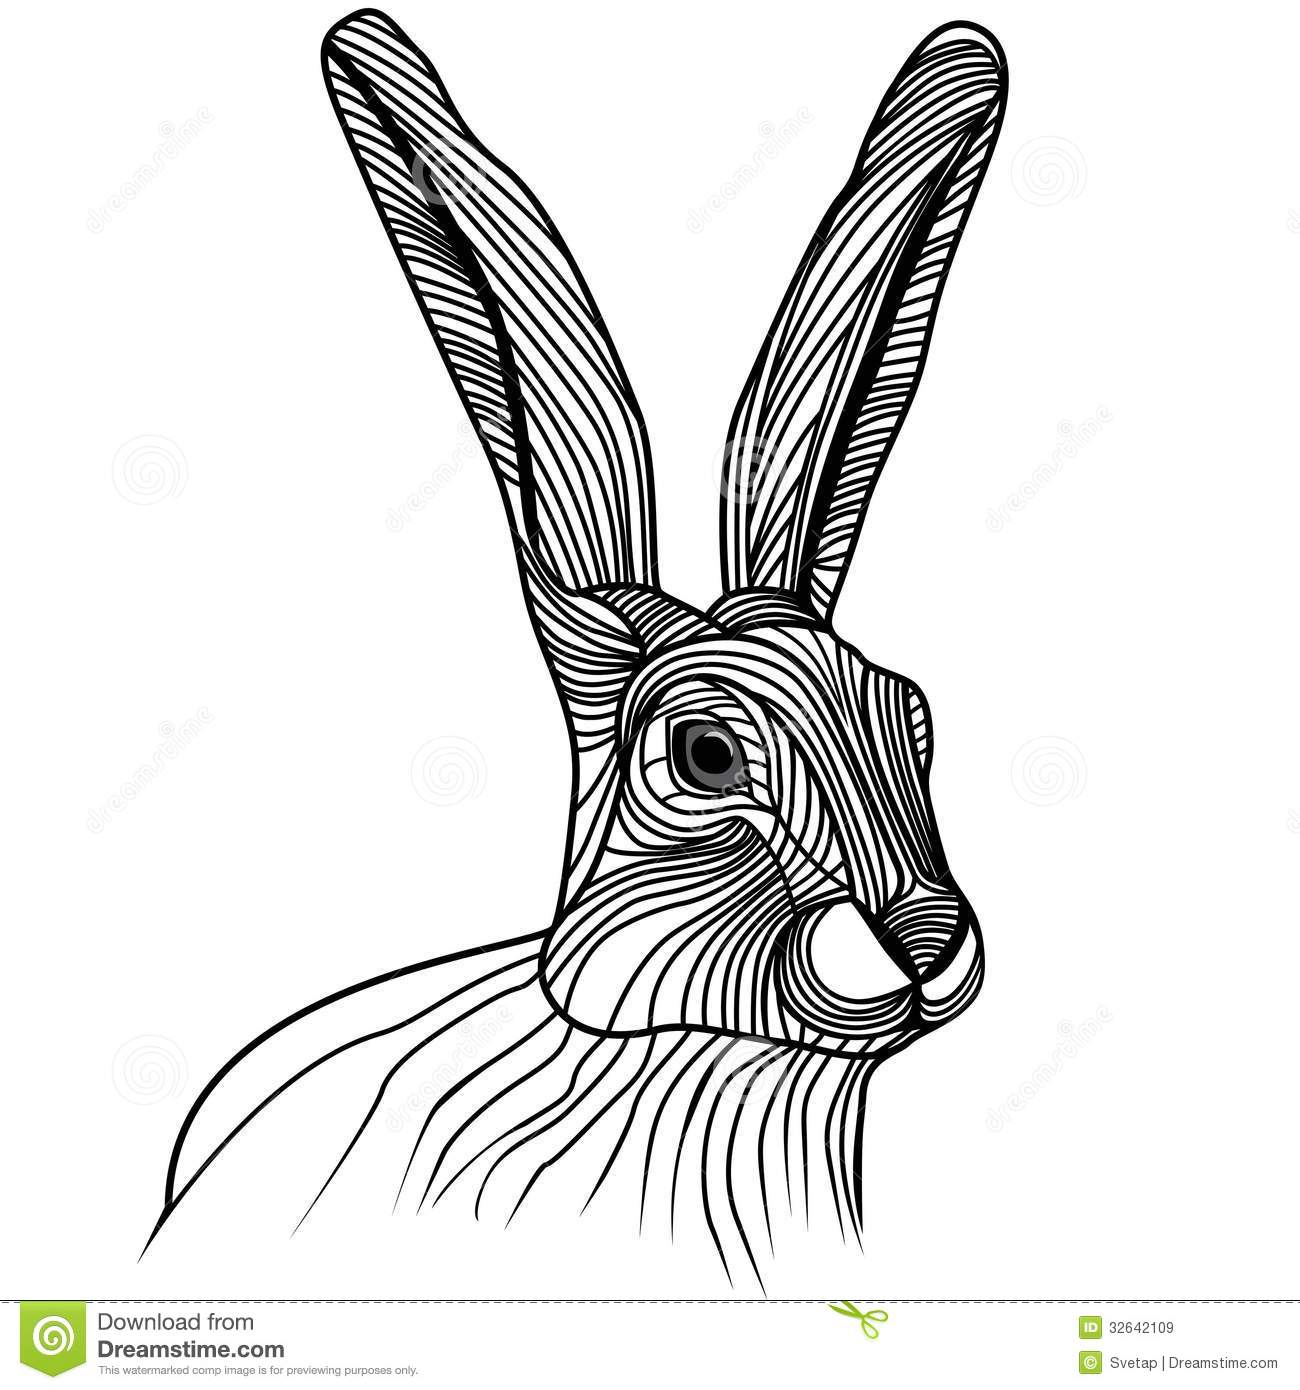 Hare illustration - photo#12